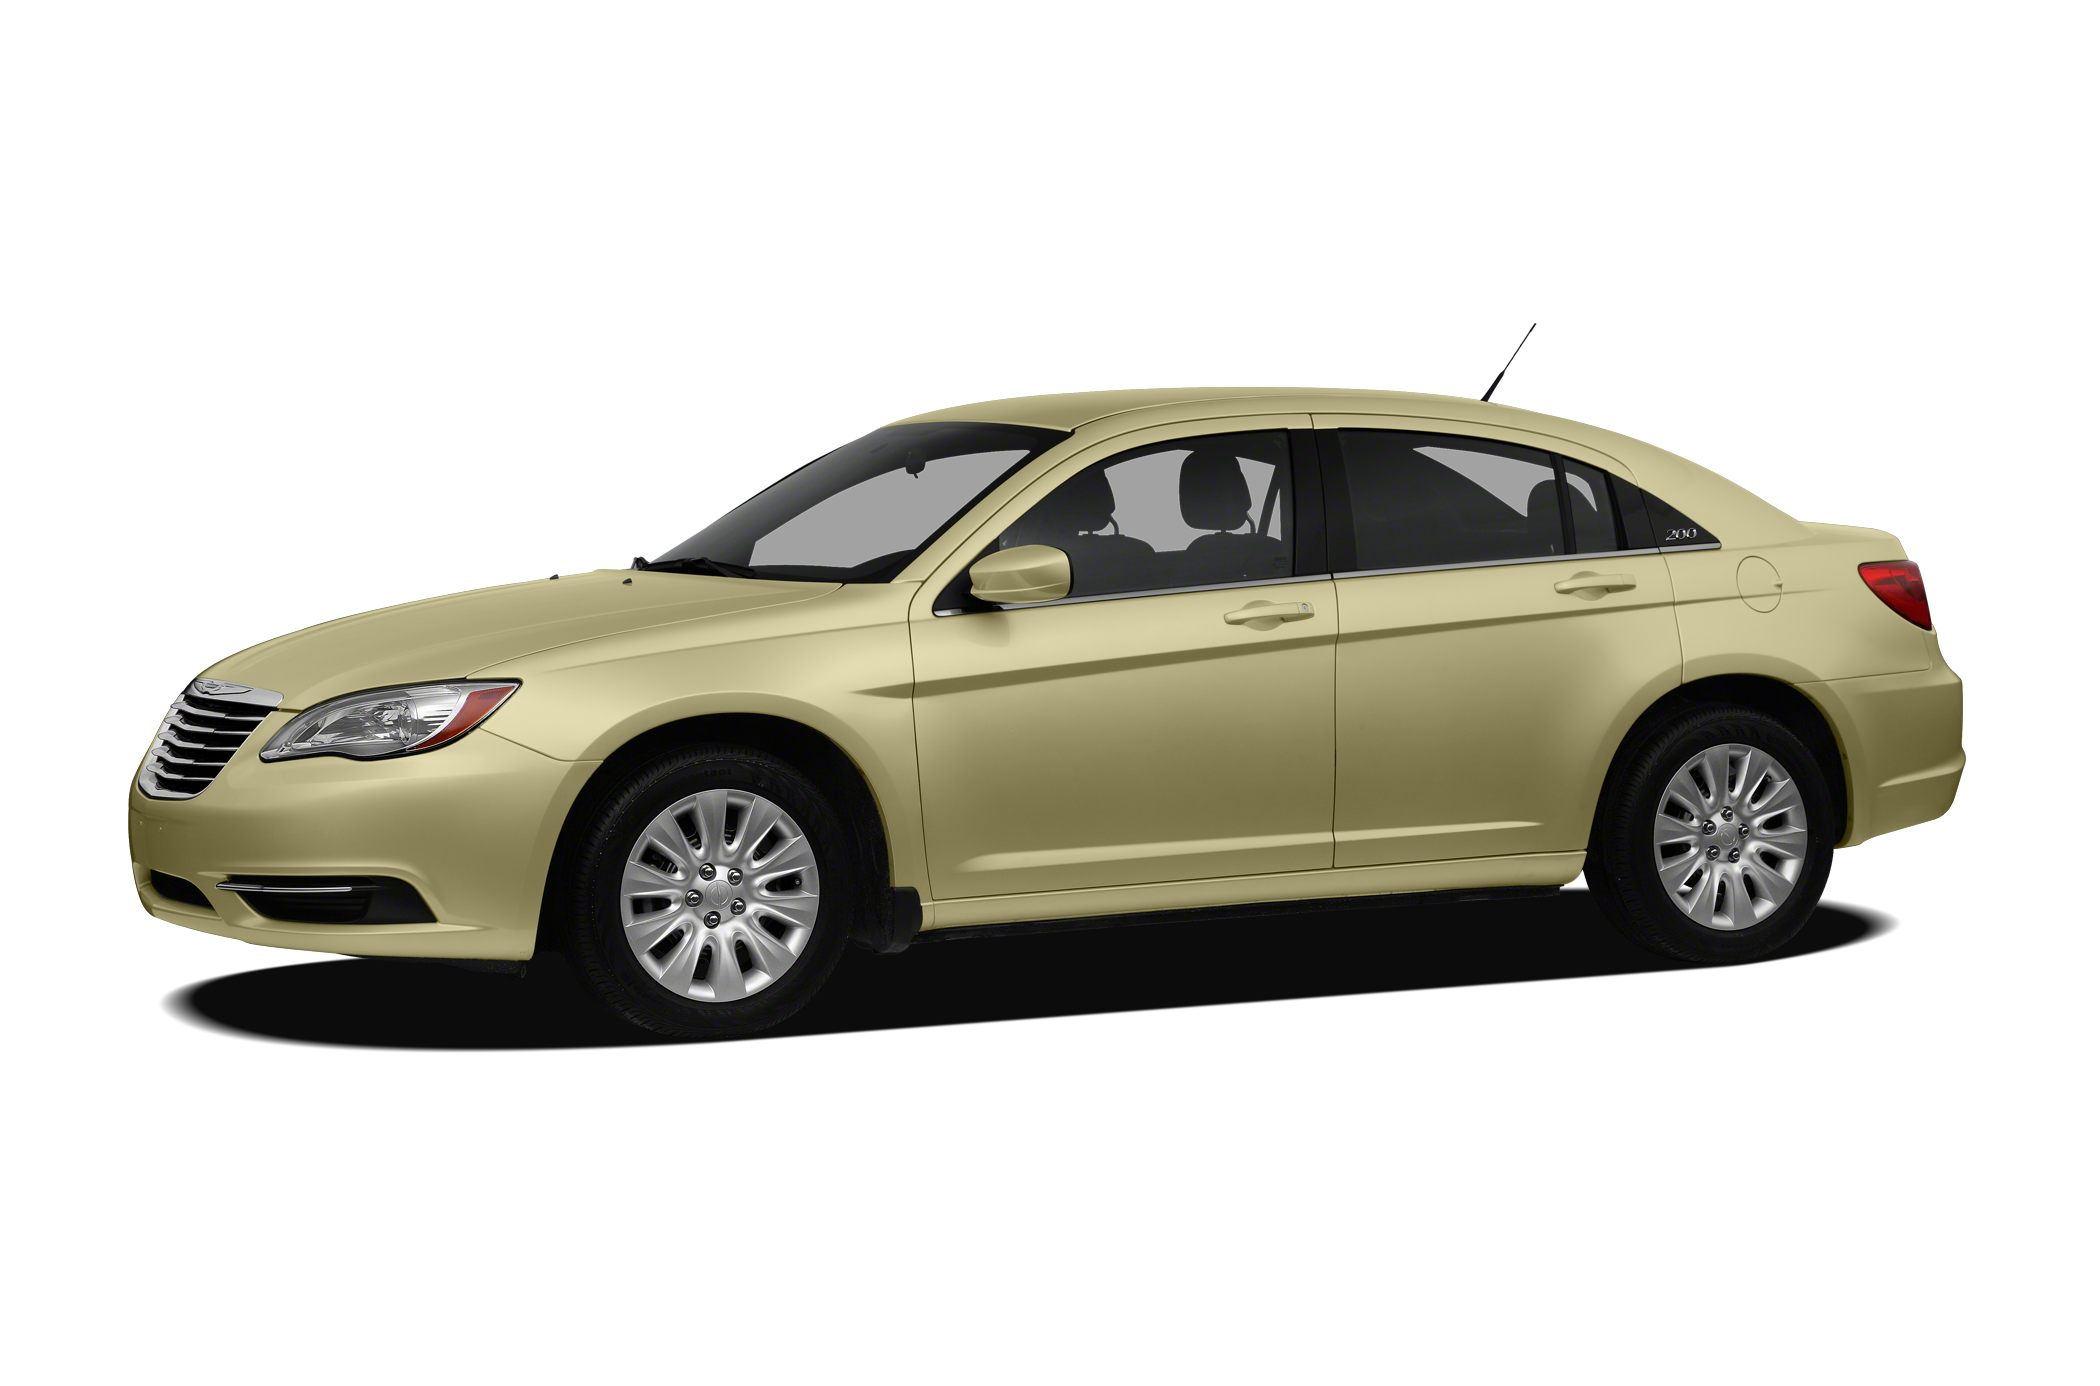 2011 Chrysler 200 Touring Sedan for sale in Woodville for $10,997 with 67,685 miles